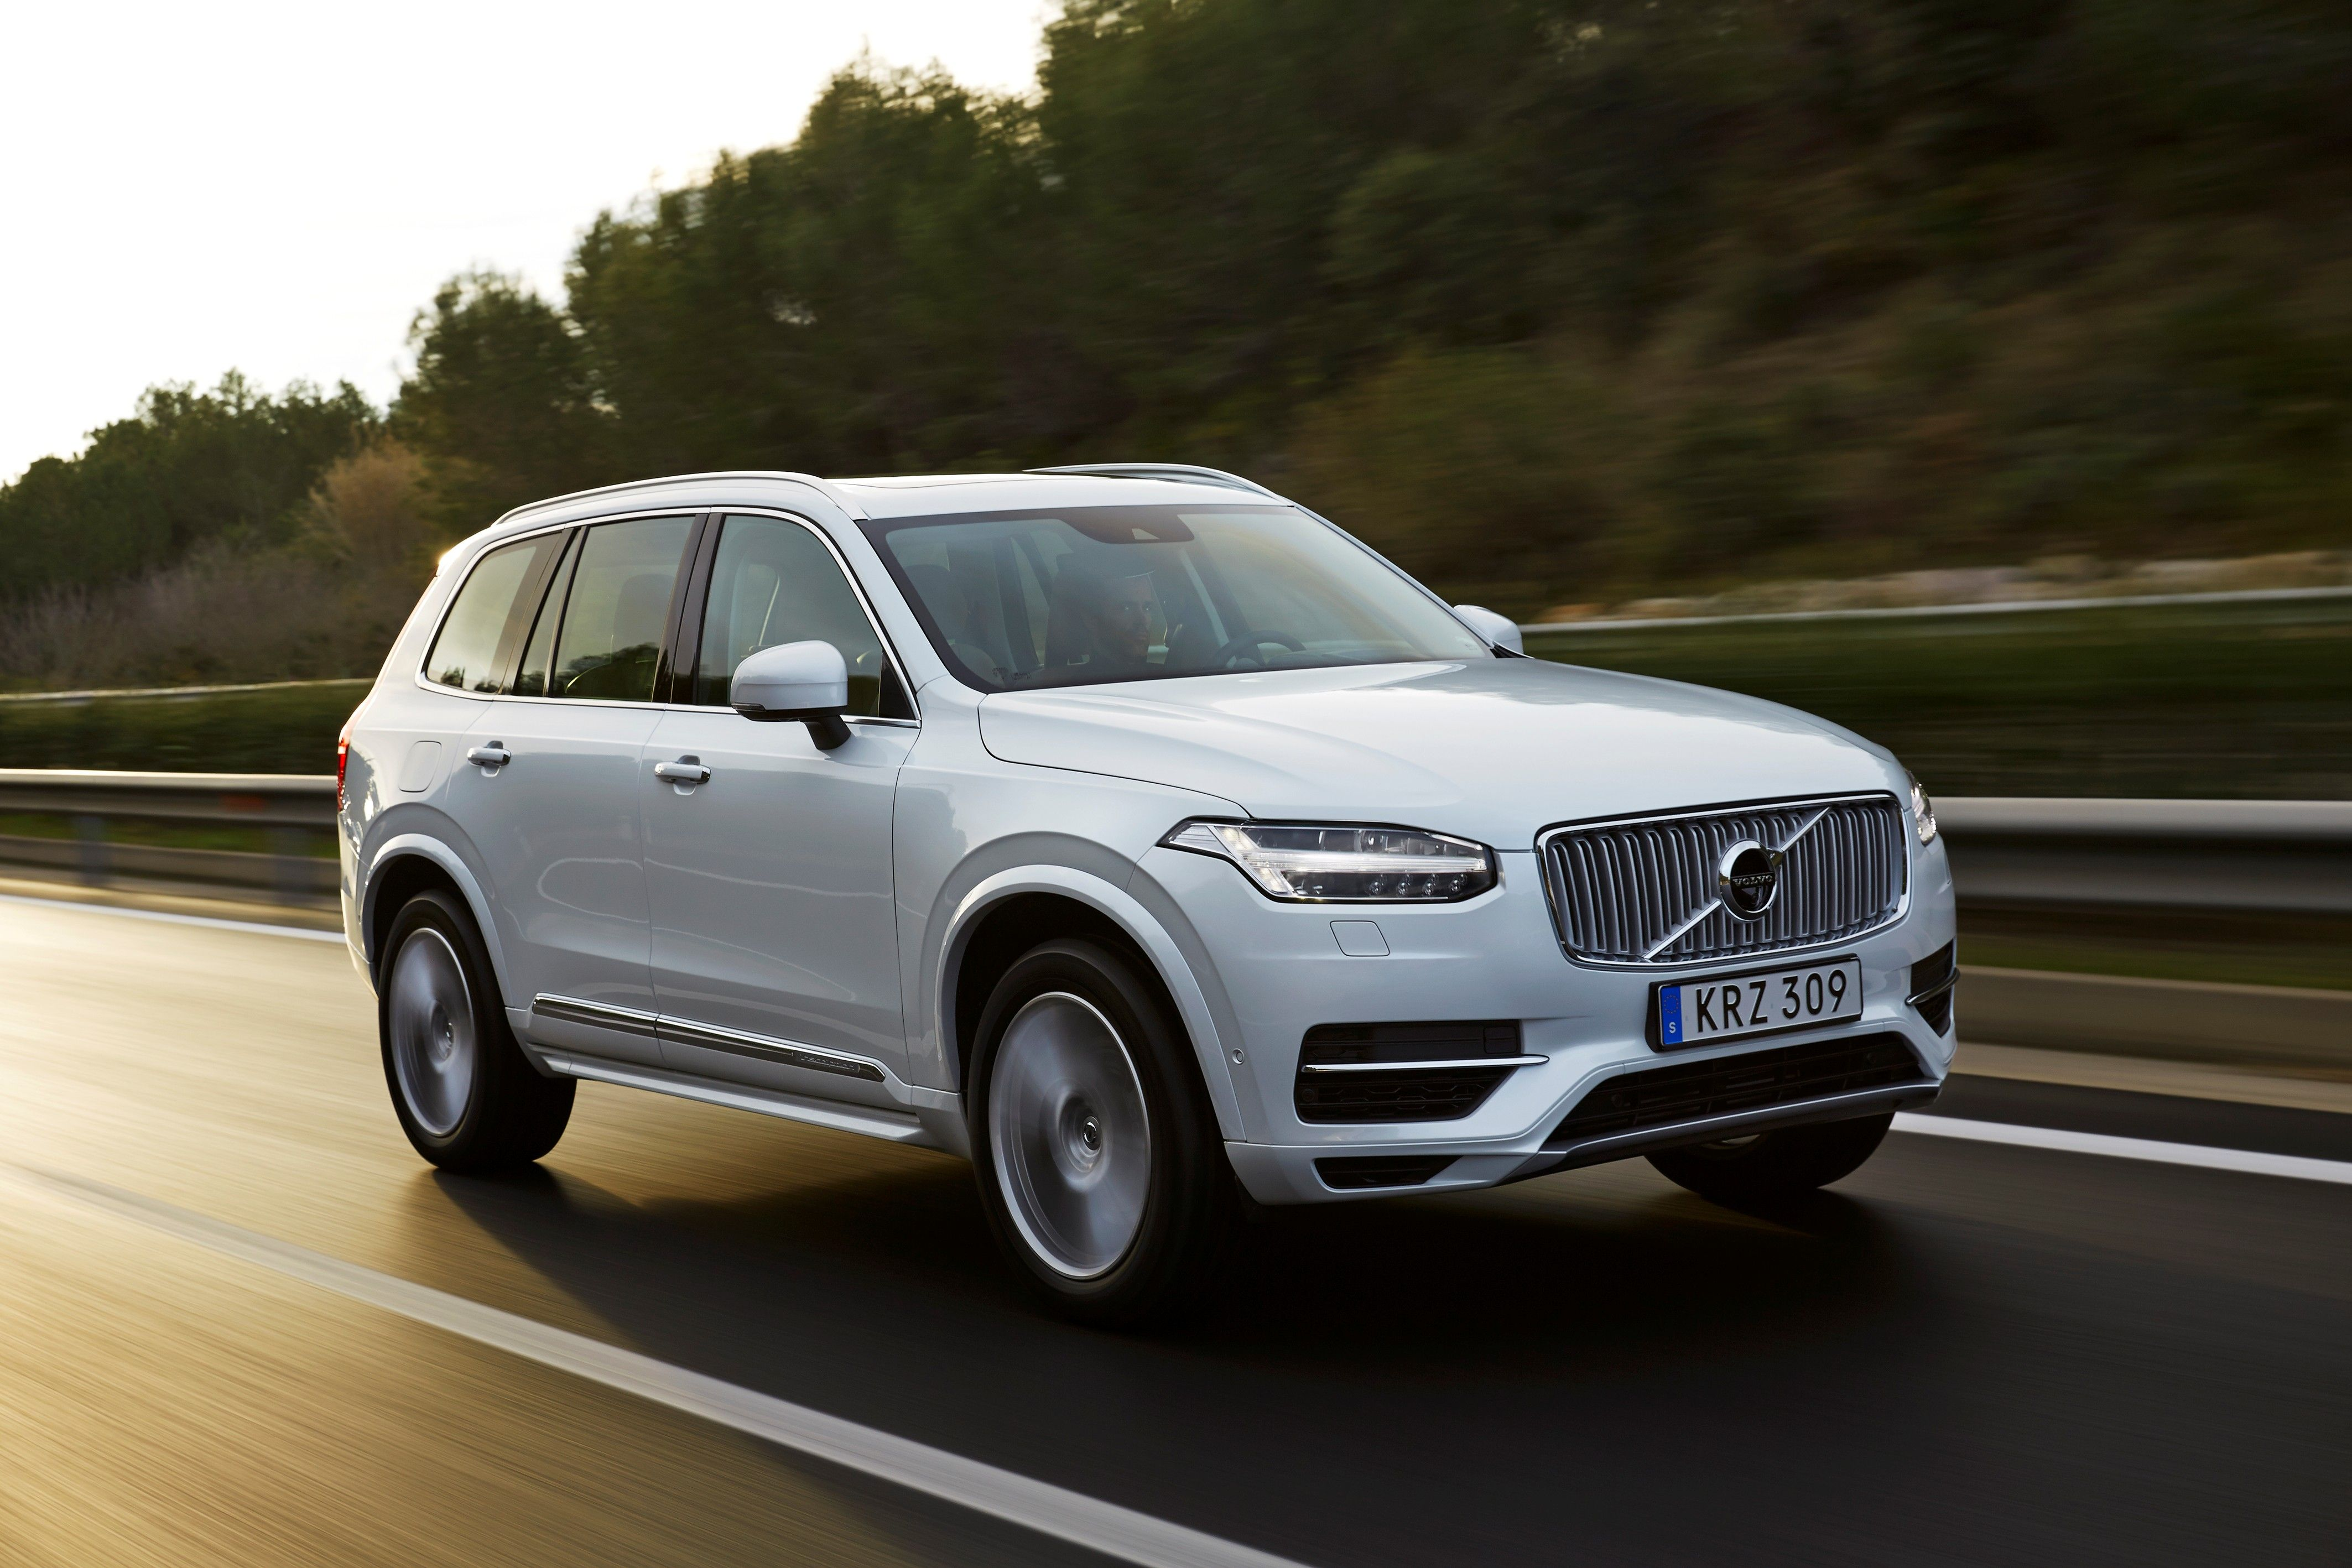 The New #Volvo XC90 T8 Twin Engine petrol plug in hybrid @volvocarsglobal